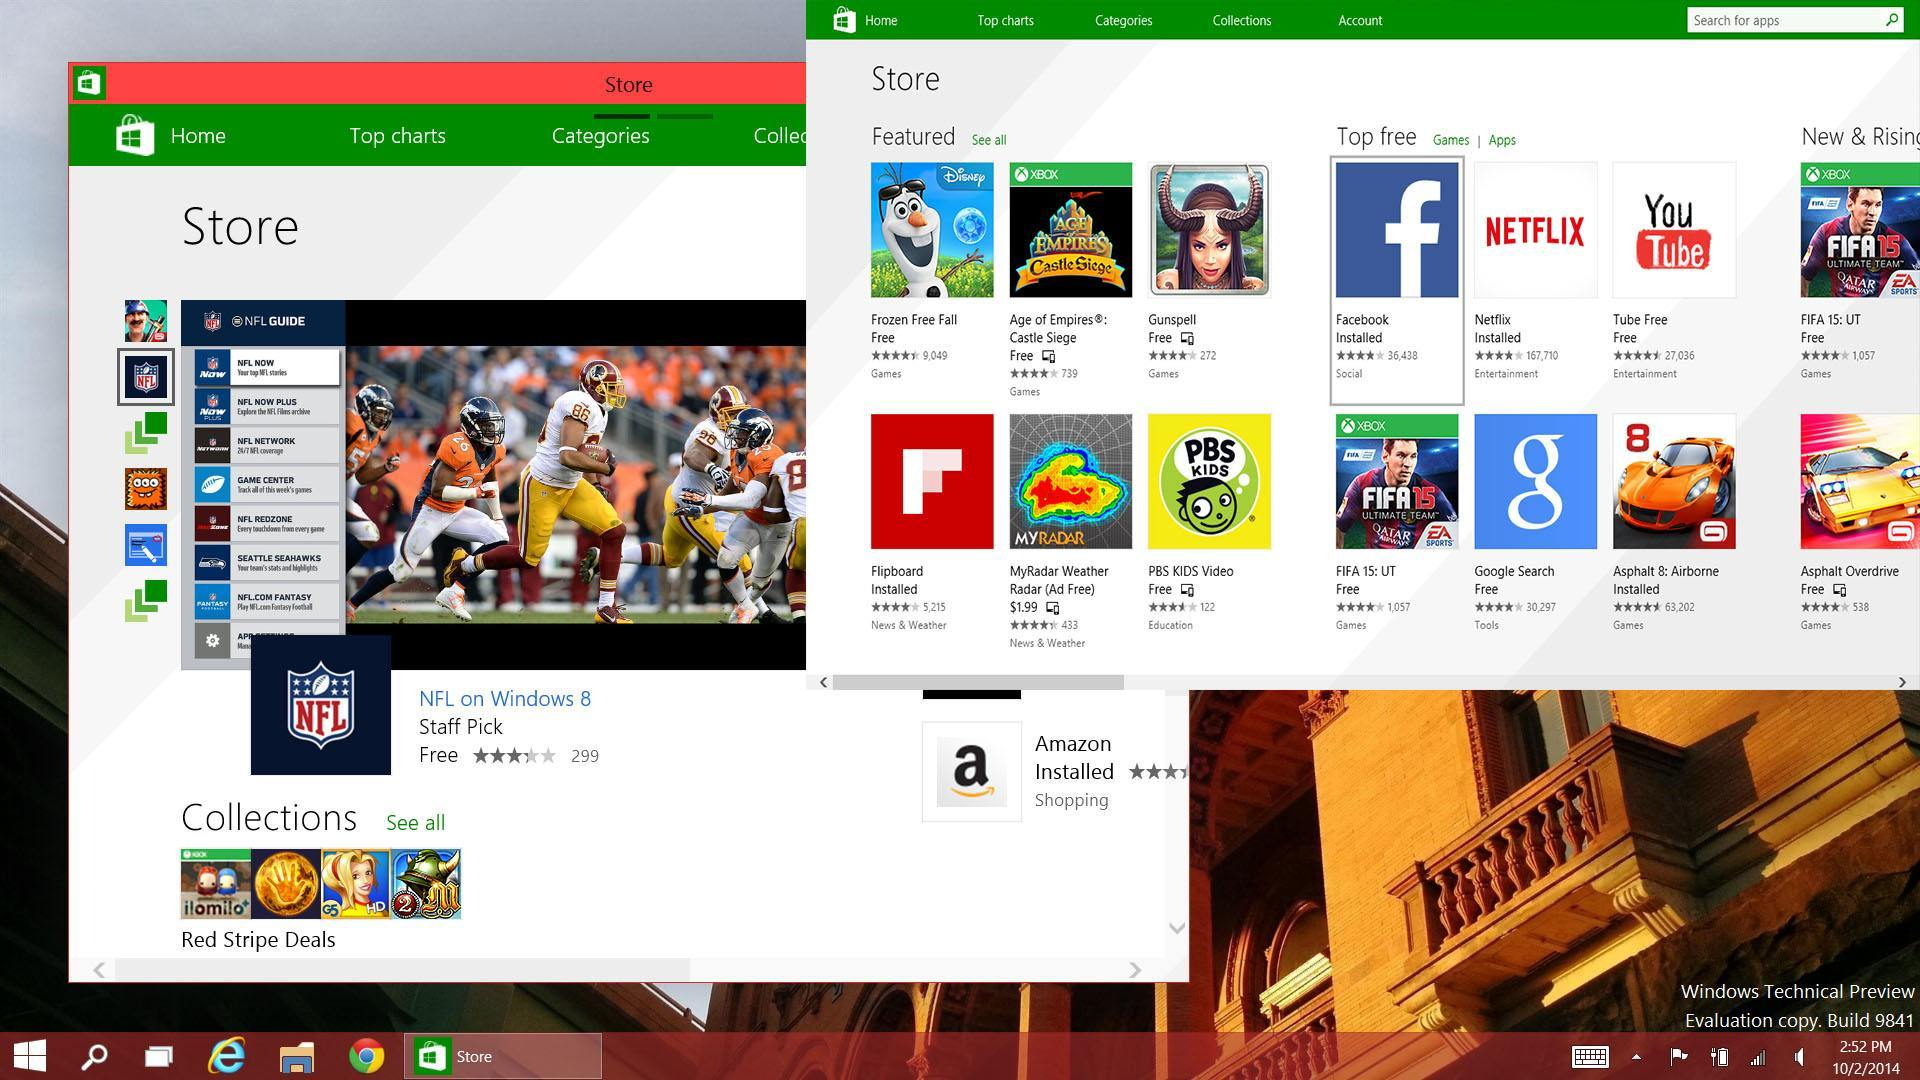 New Microsoft Windows 10 Store Aims to Unify PC Apps and Games Under One Roof